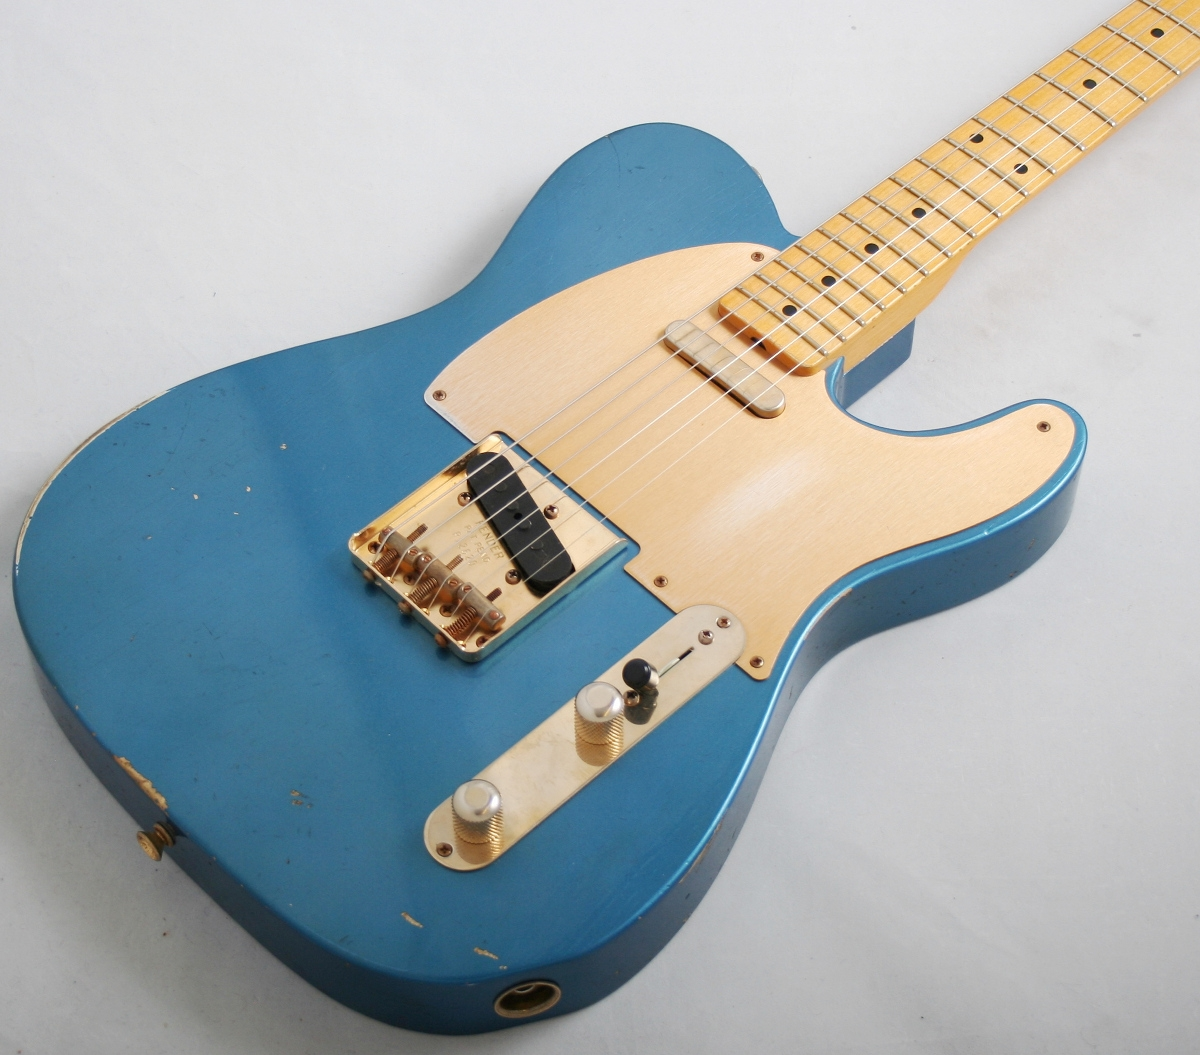 fender custom shop 39 52 telecaster relic aged lake placid blue. Black Bedroom Furniture Sets. Home Design Ideas